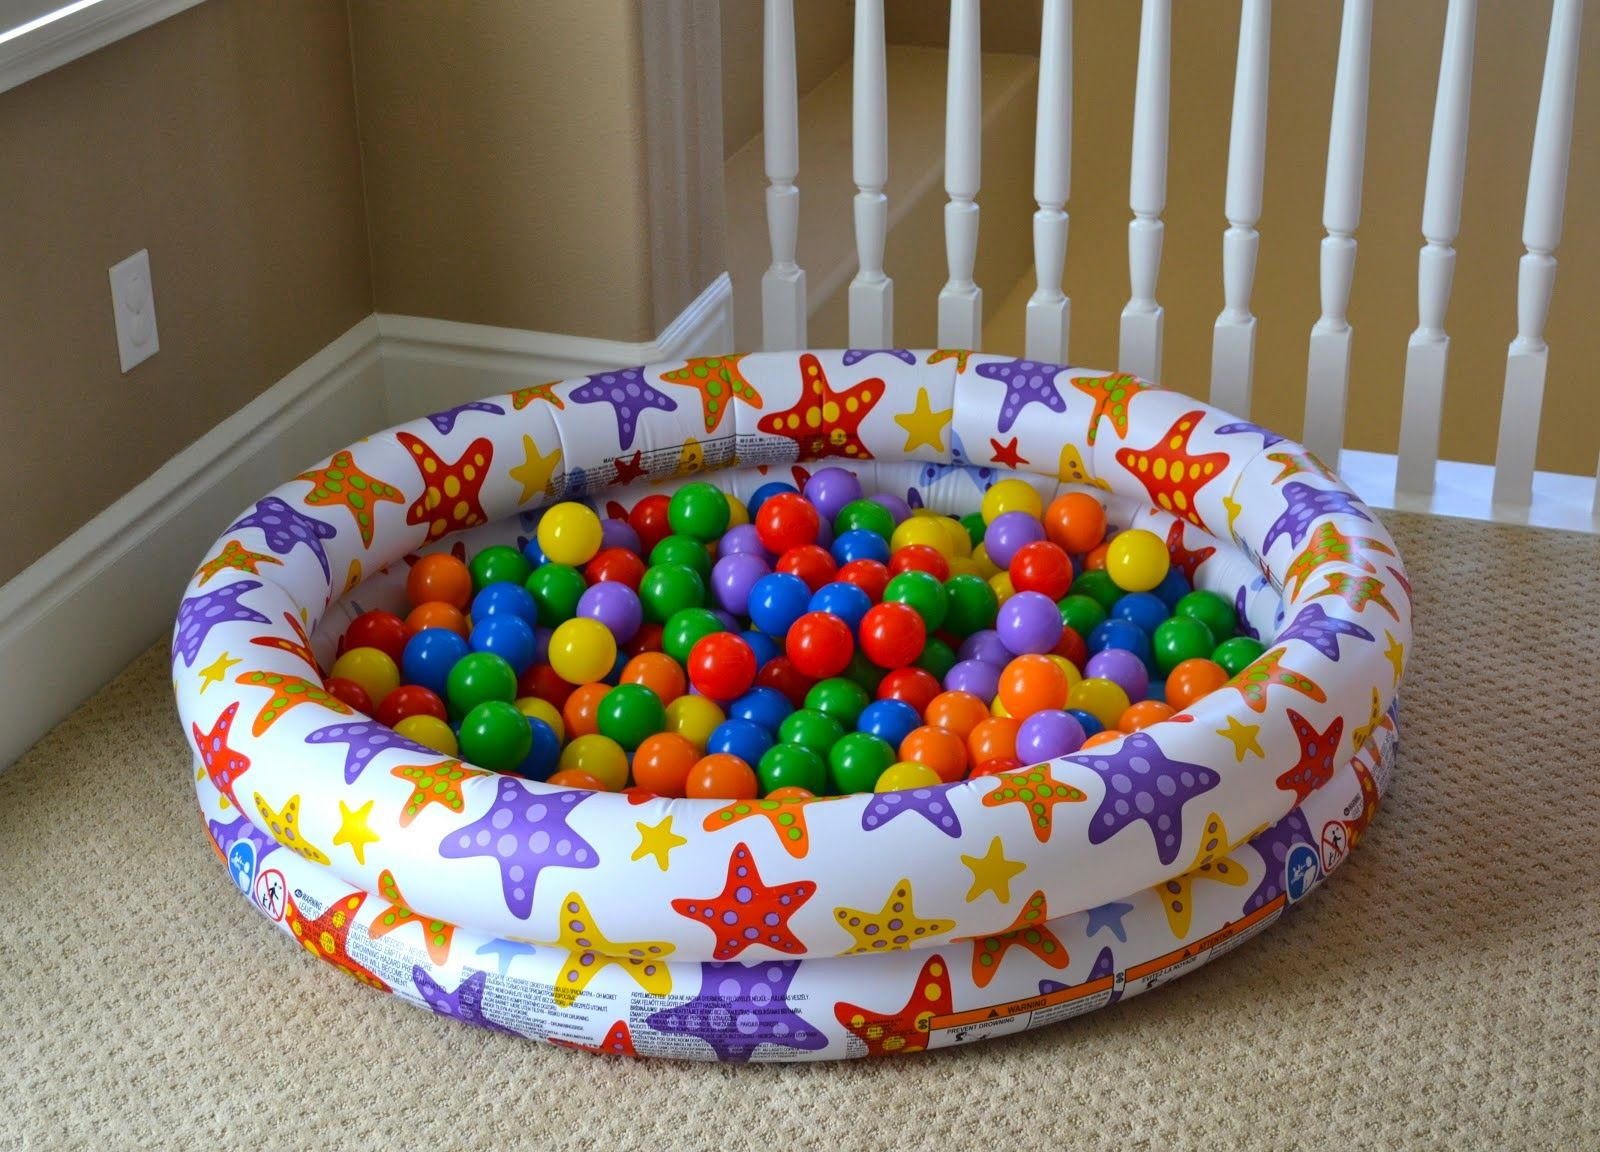 Best Birthday Presents For One Year Olds A DIY Ball Pit